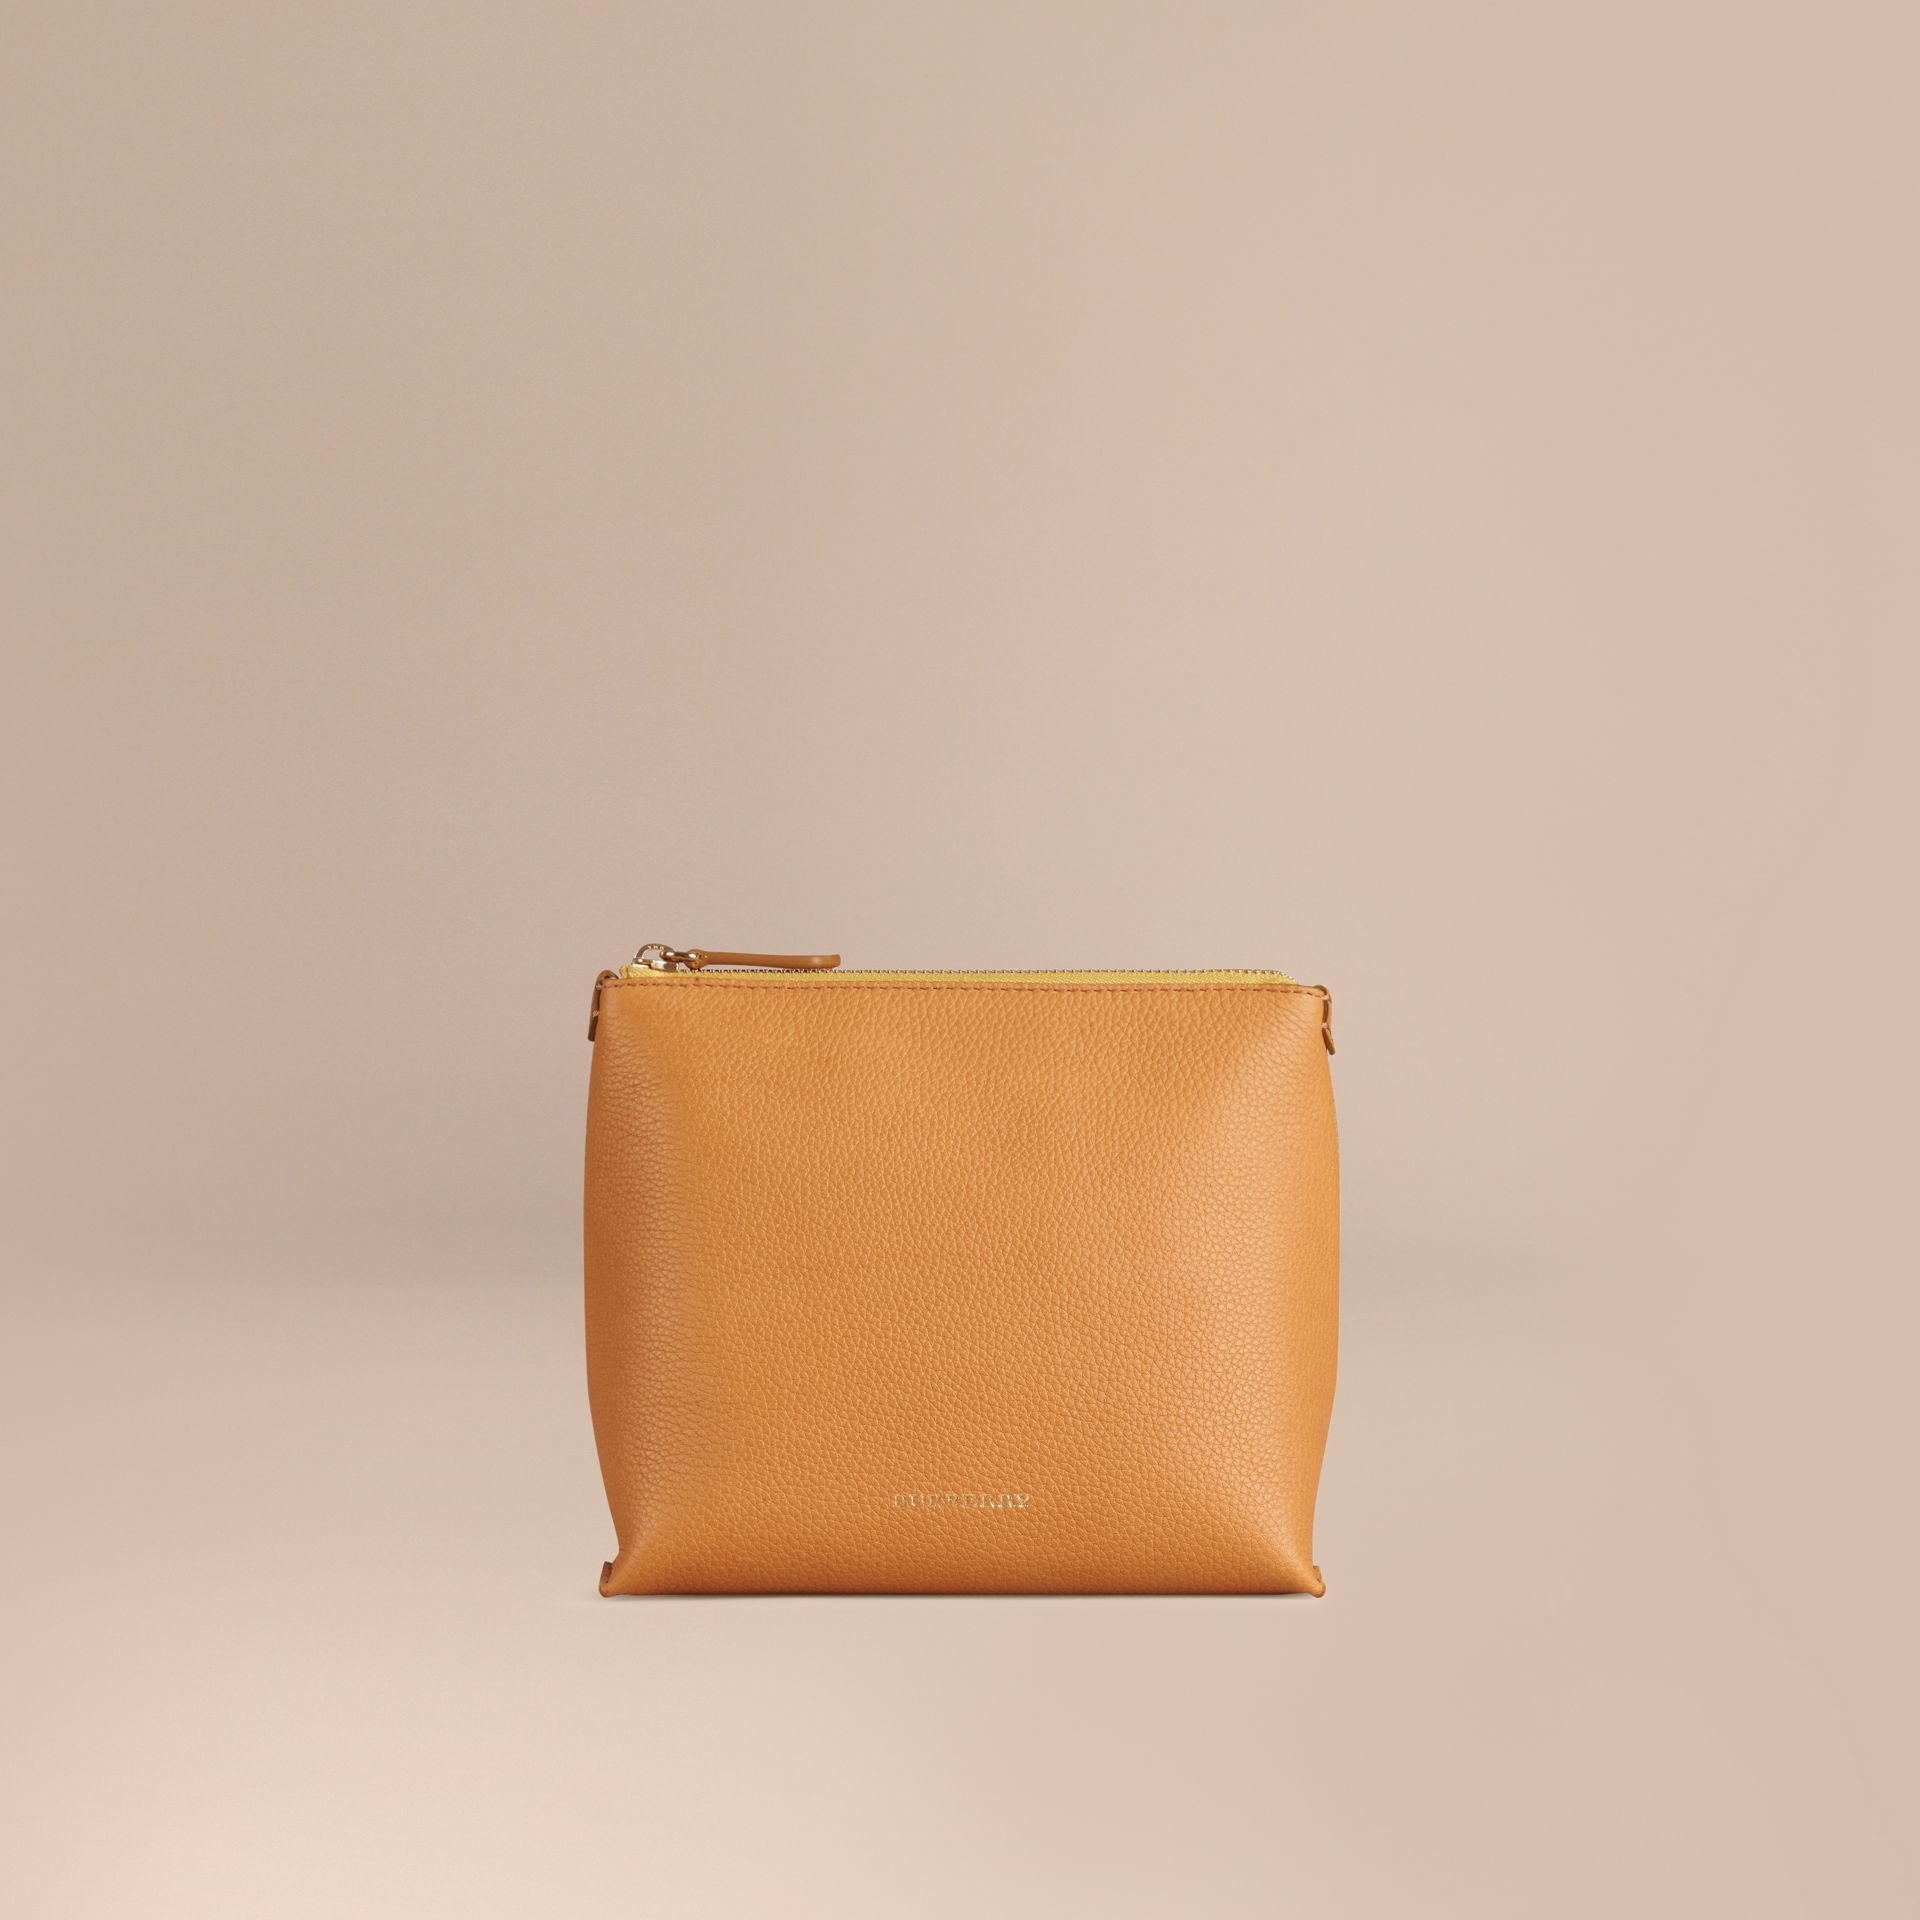 Ochre yellow Grainy Leather Zipped  Pouch Ochre Yellow - gallery image 1